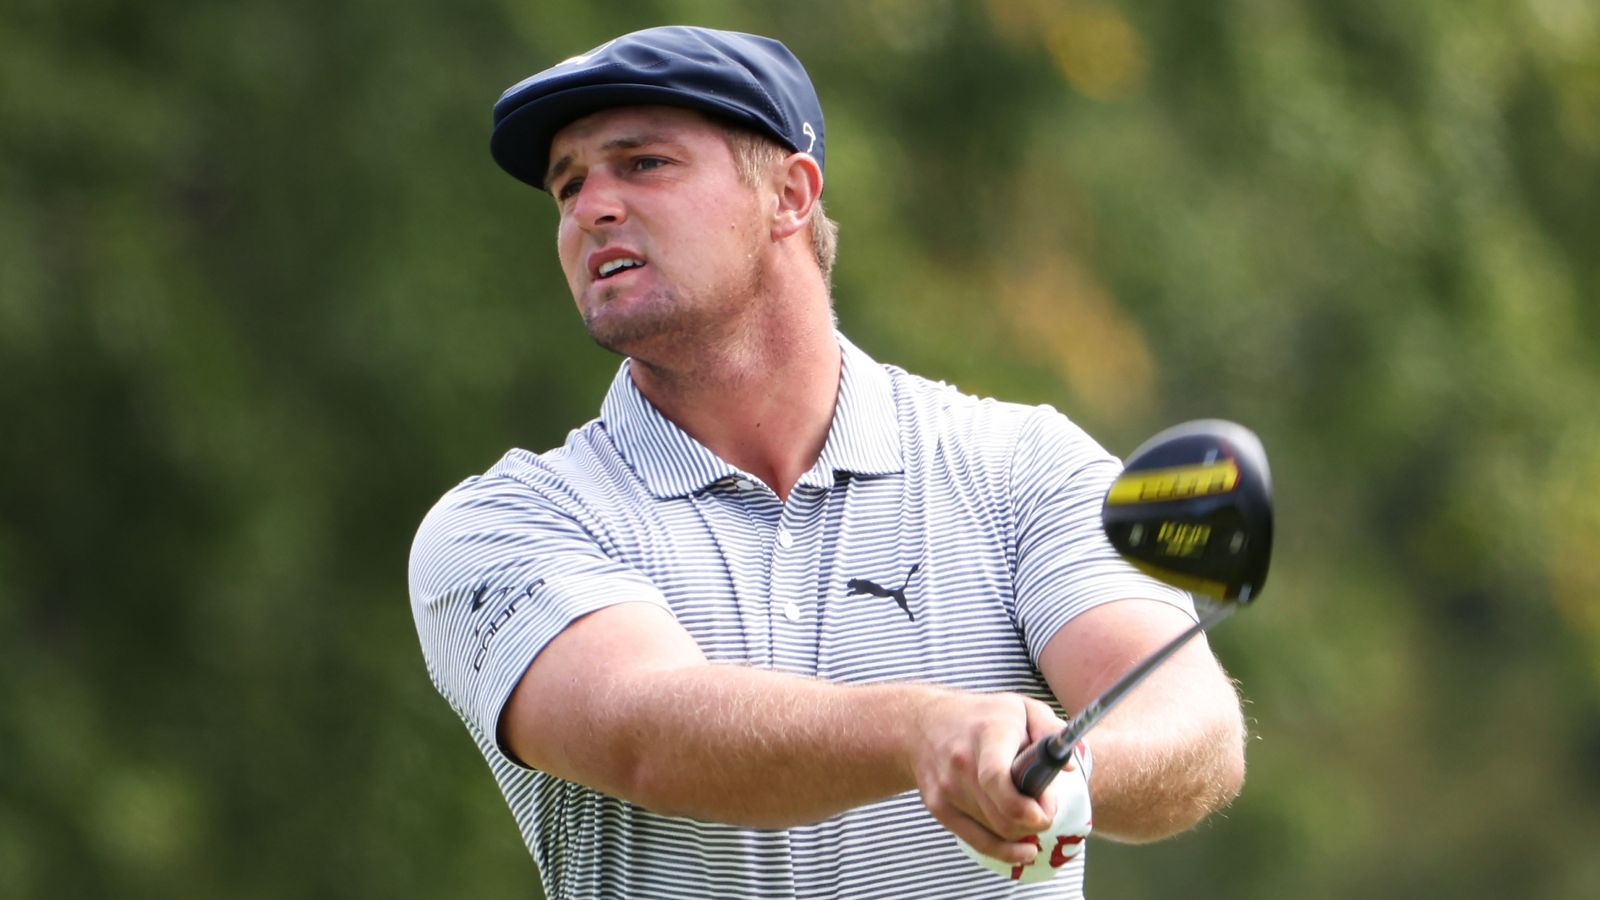 Bryson DeChambeau: Is he good for golf? Andrew Coltart reflects on his US Open victory